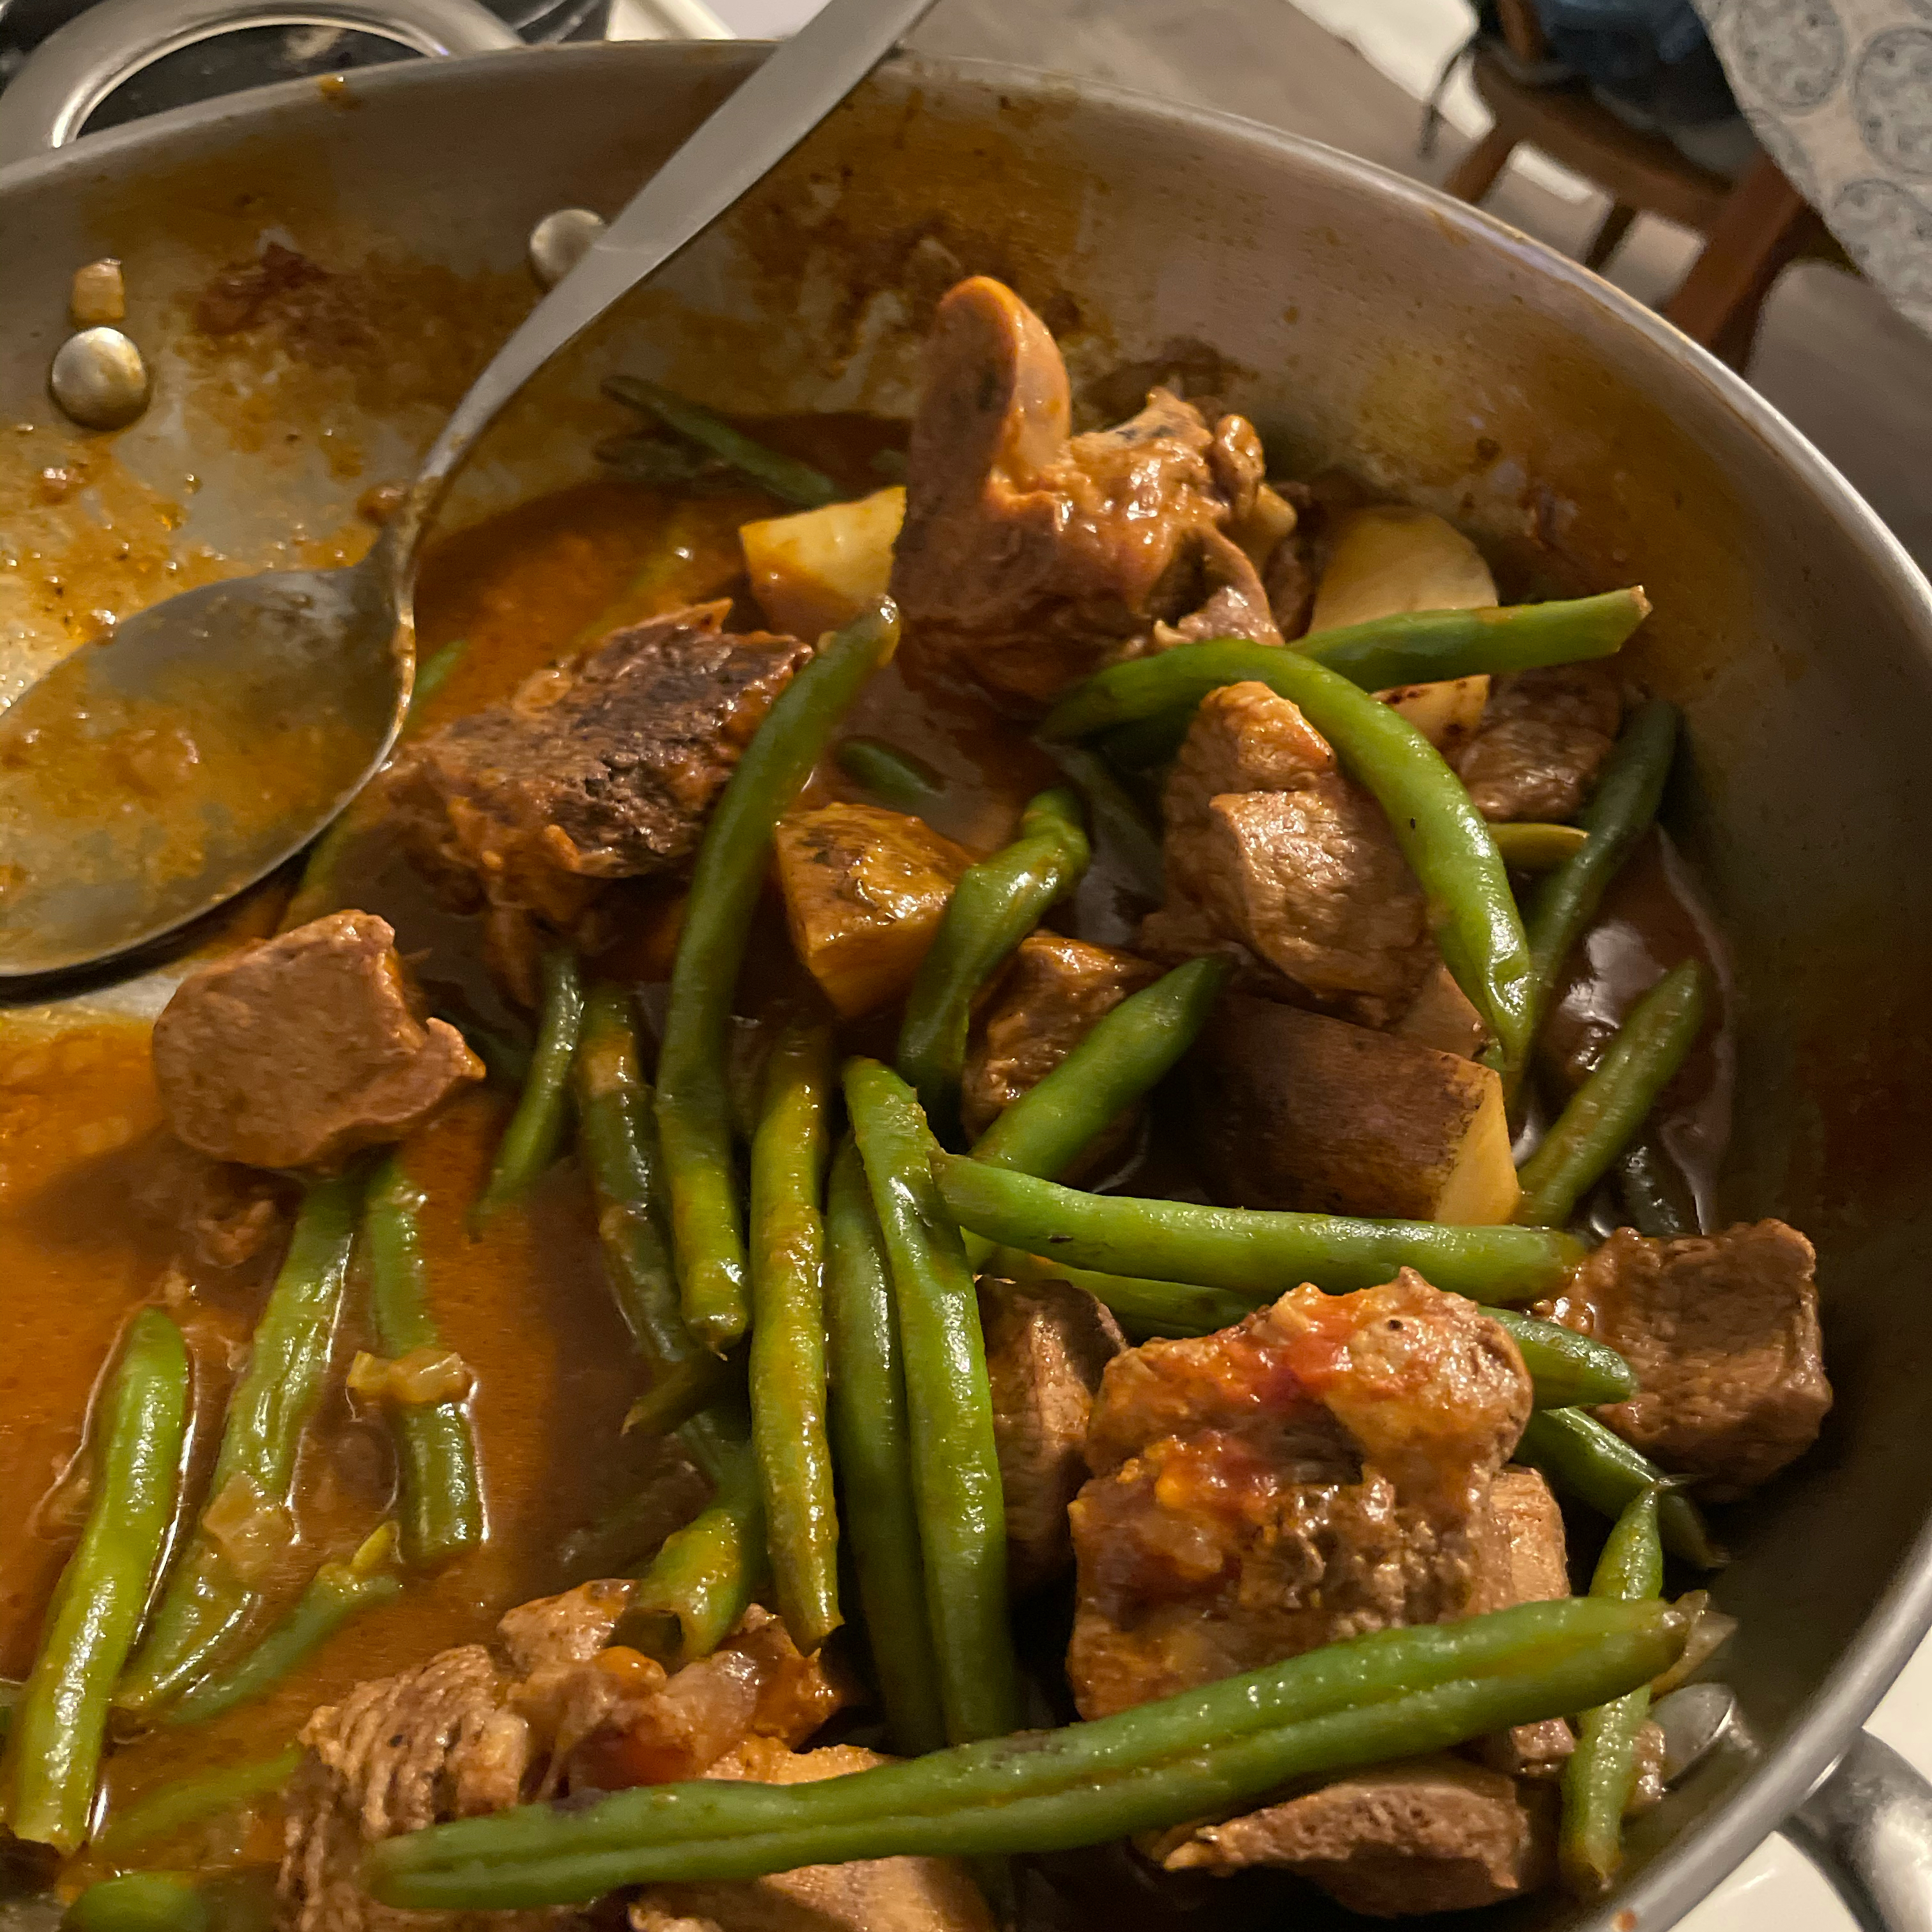 Lamb Stew with Green Beans stgettis